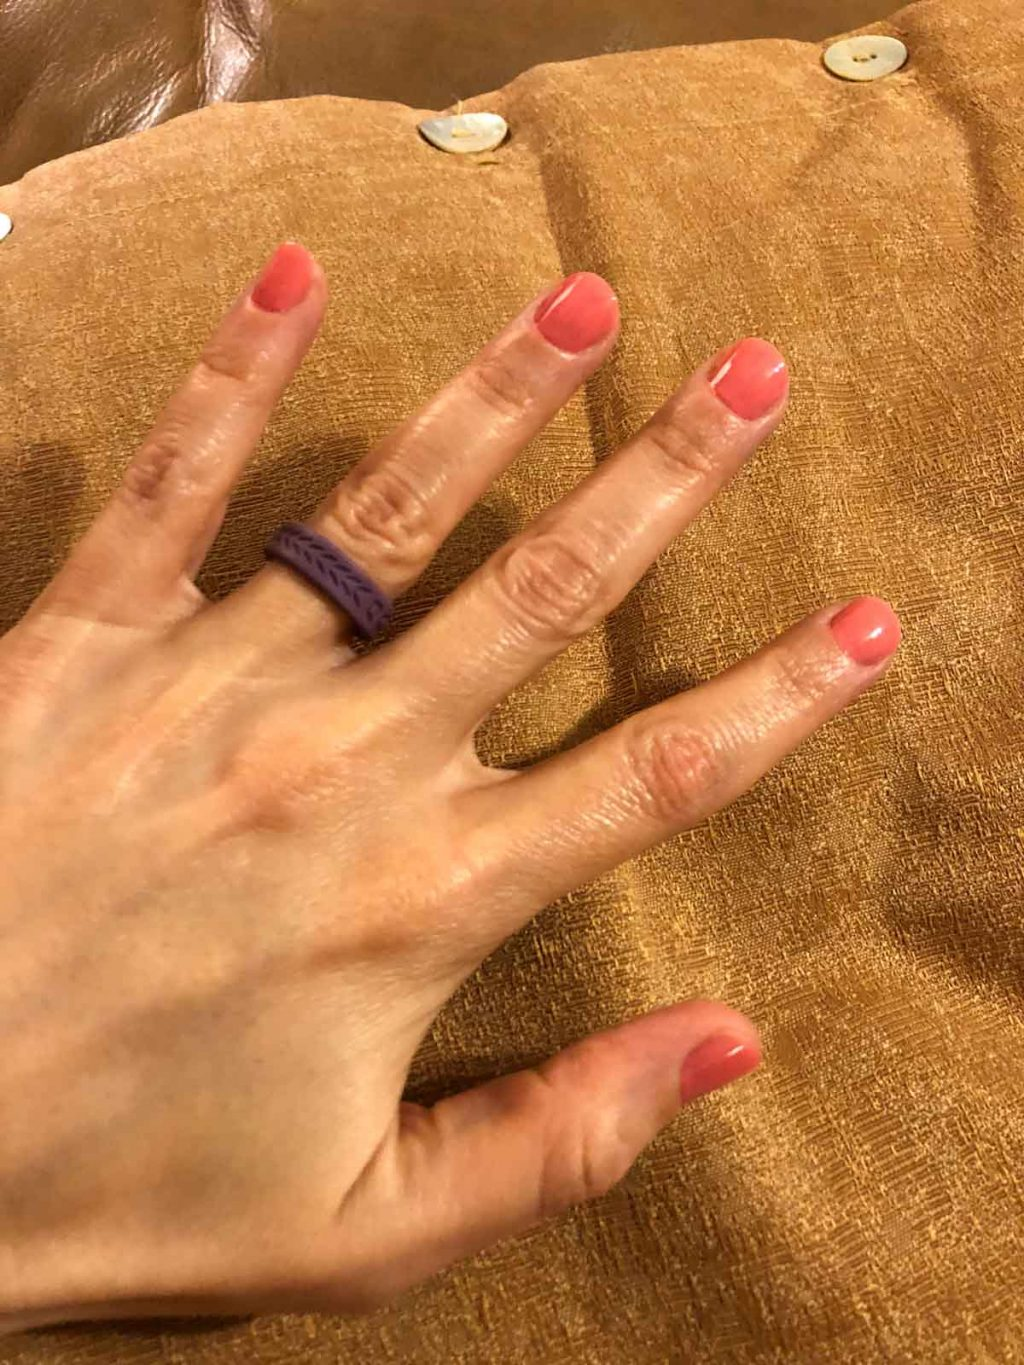 A woman's hand with painted pink nails and a purple qalo ring.